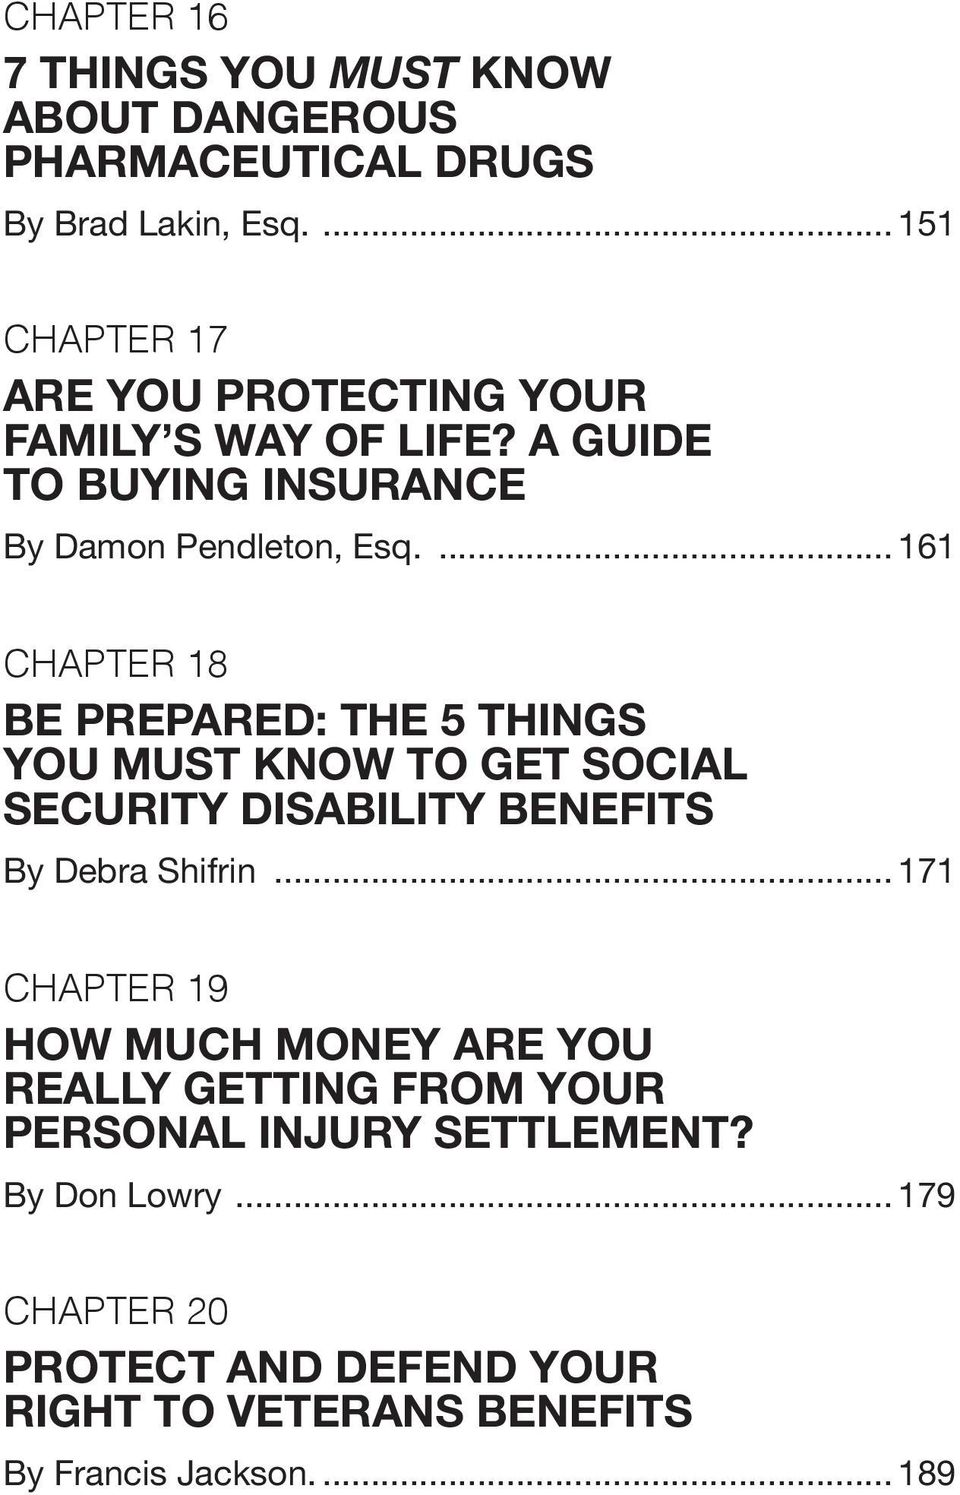 ... 161 Chapter 18 be PRePaRed: the 5 things you must know to get SoCIal SeCuRIty disability benefits By Debra Shifrin.